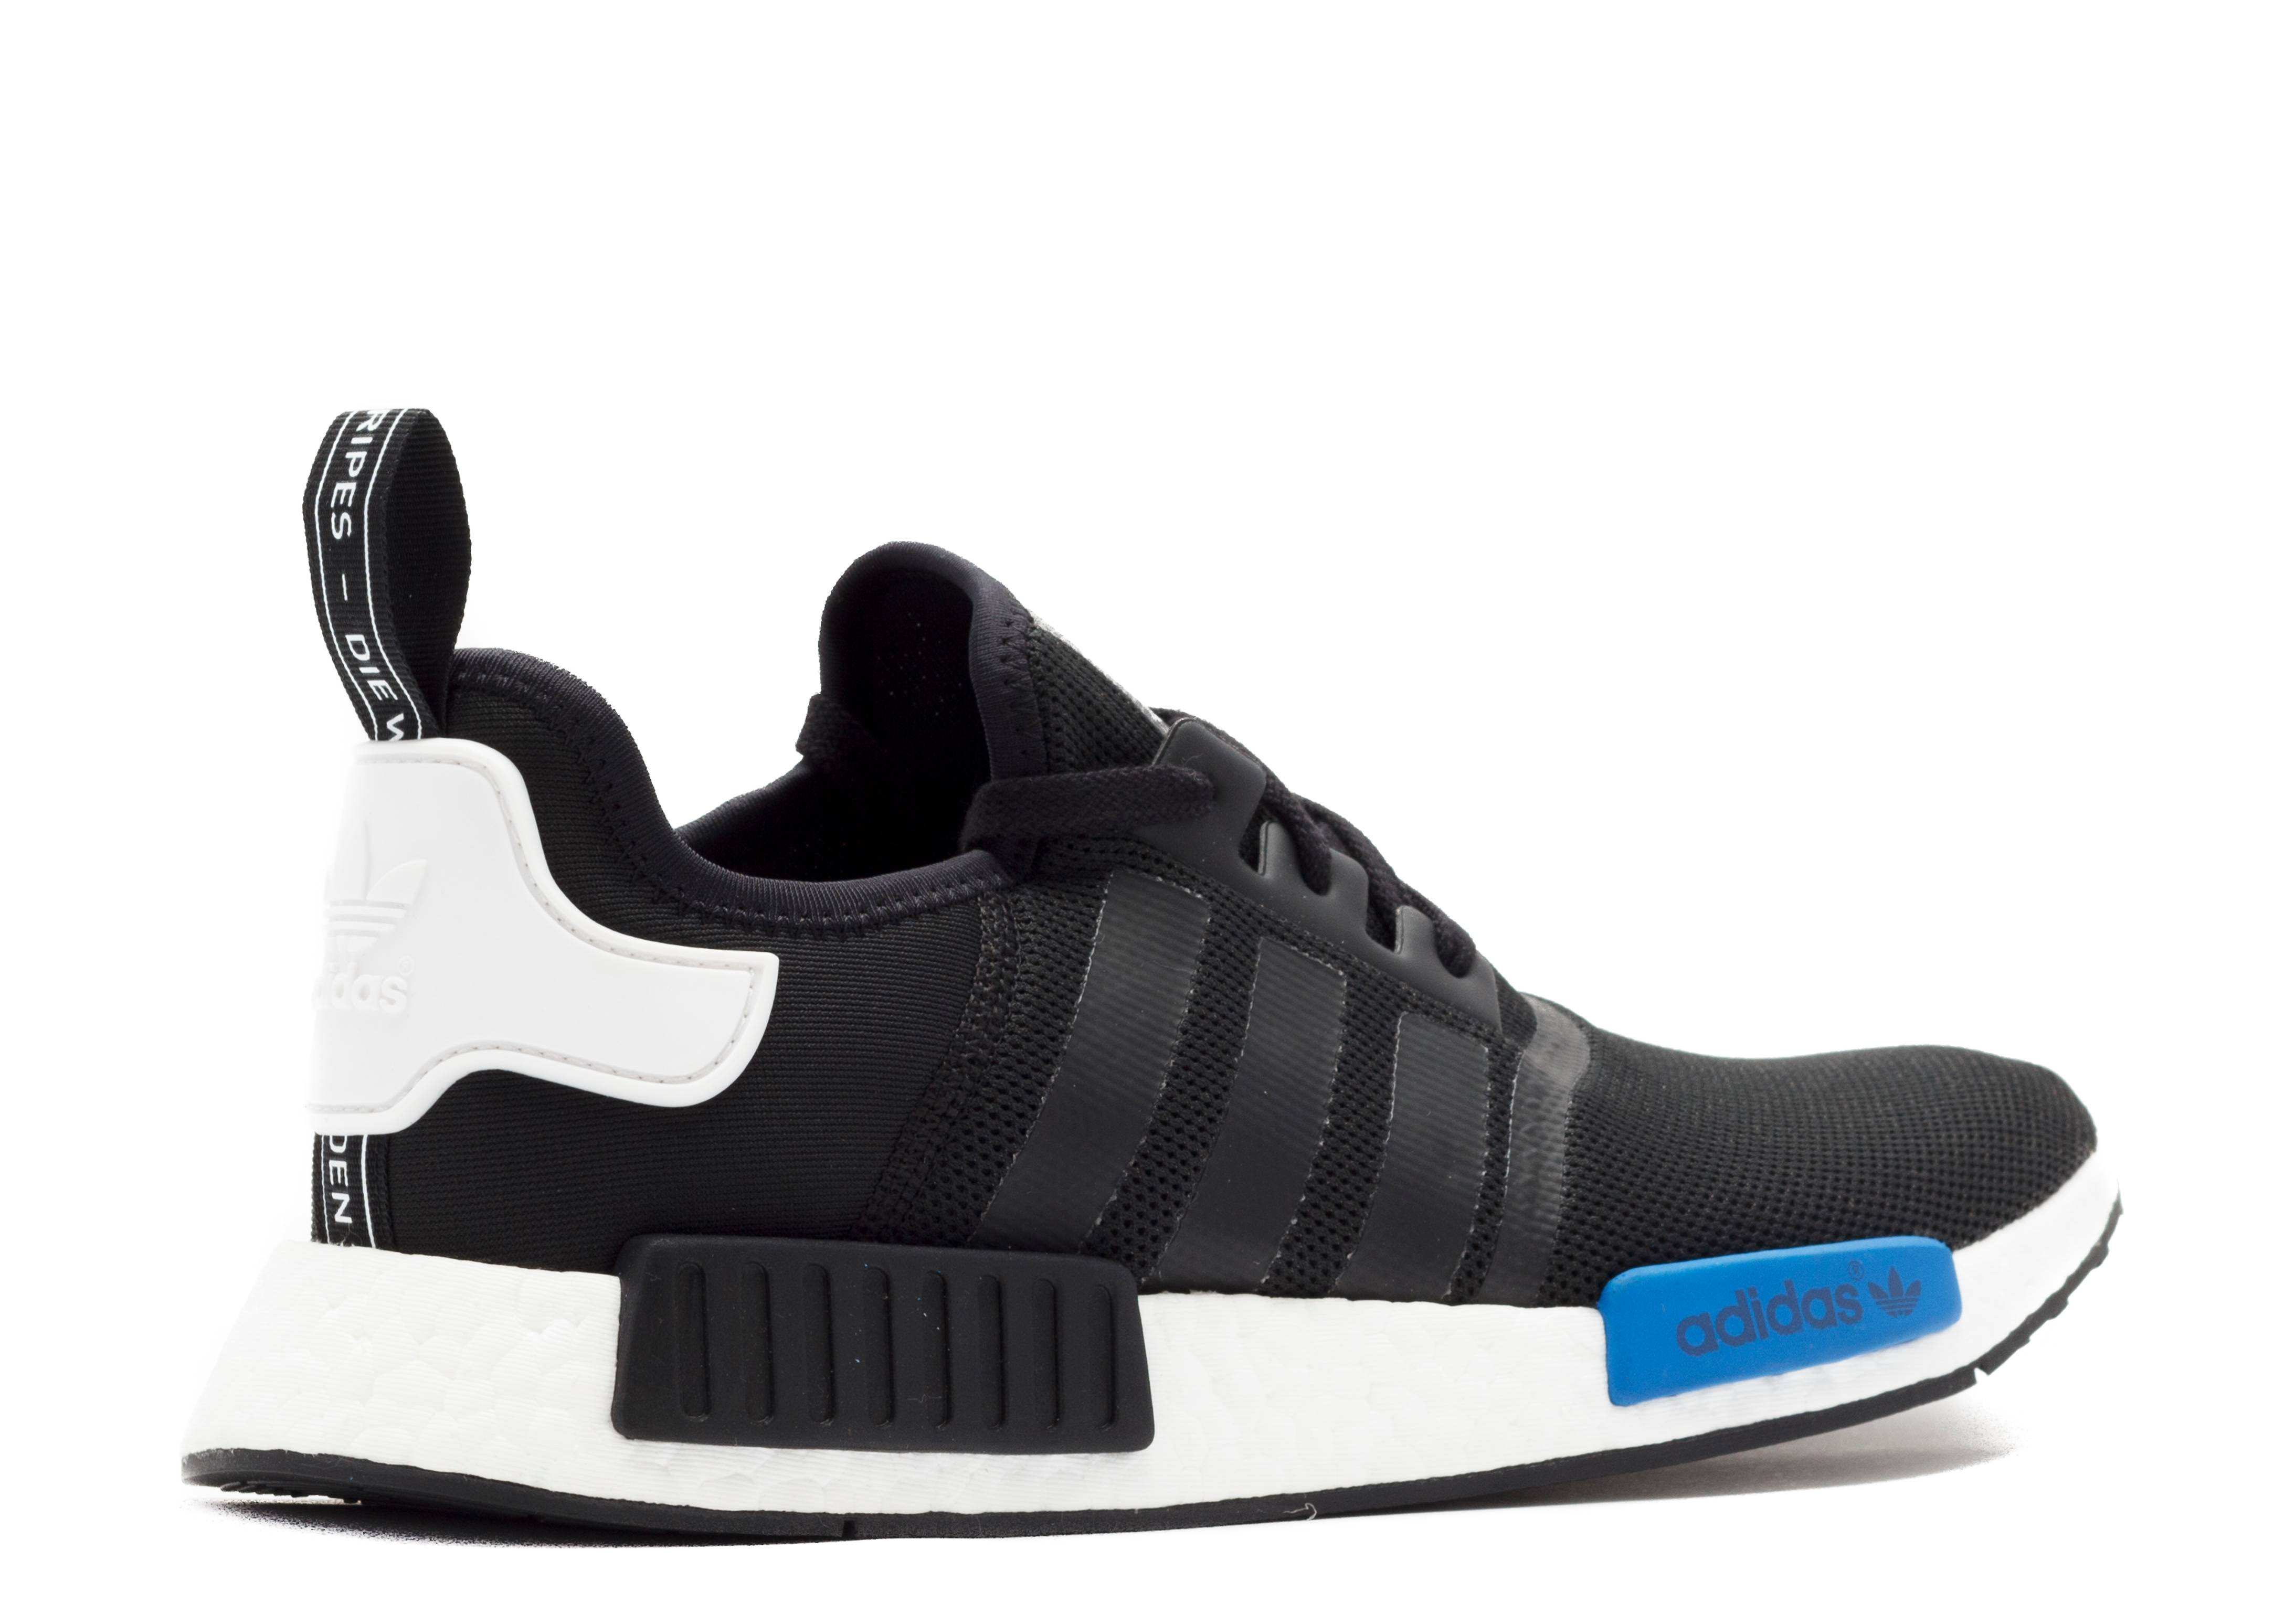 8d45107b0831d Adidas Nmd Black Blue White kenmore-cleaning.co.uk